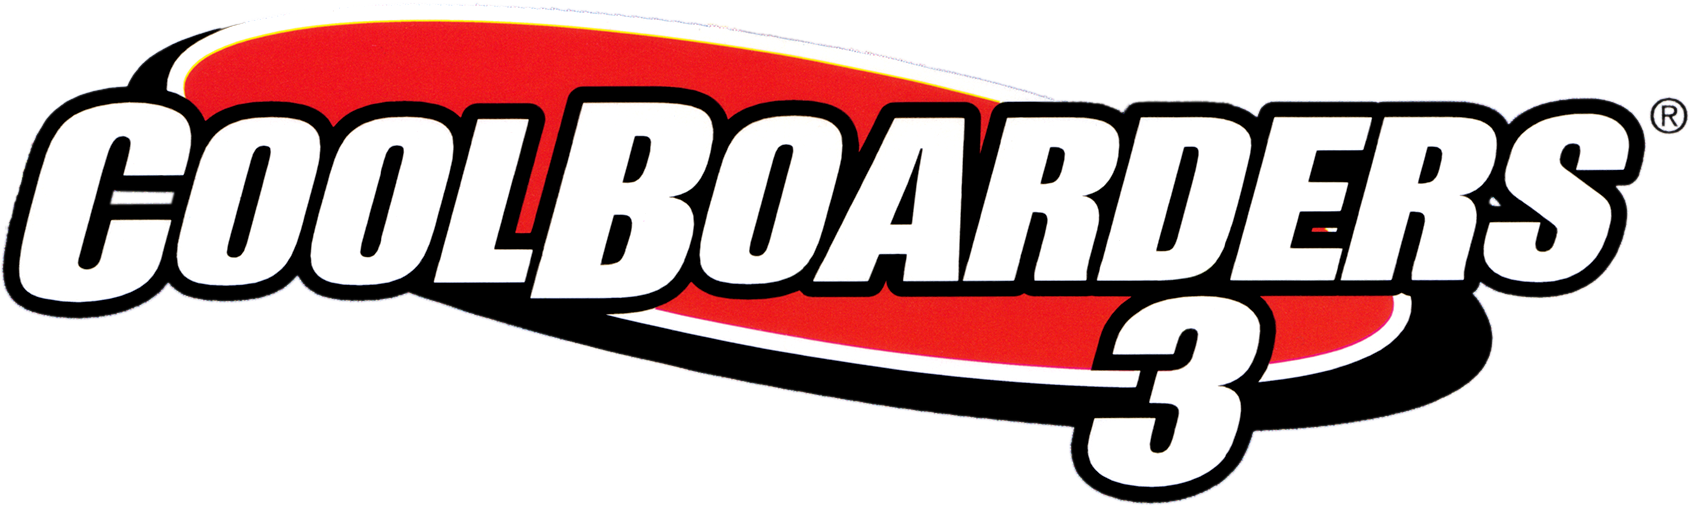 image cool boarders 3 png logopedia fandom powered by wikia